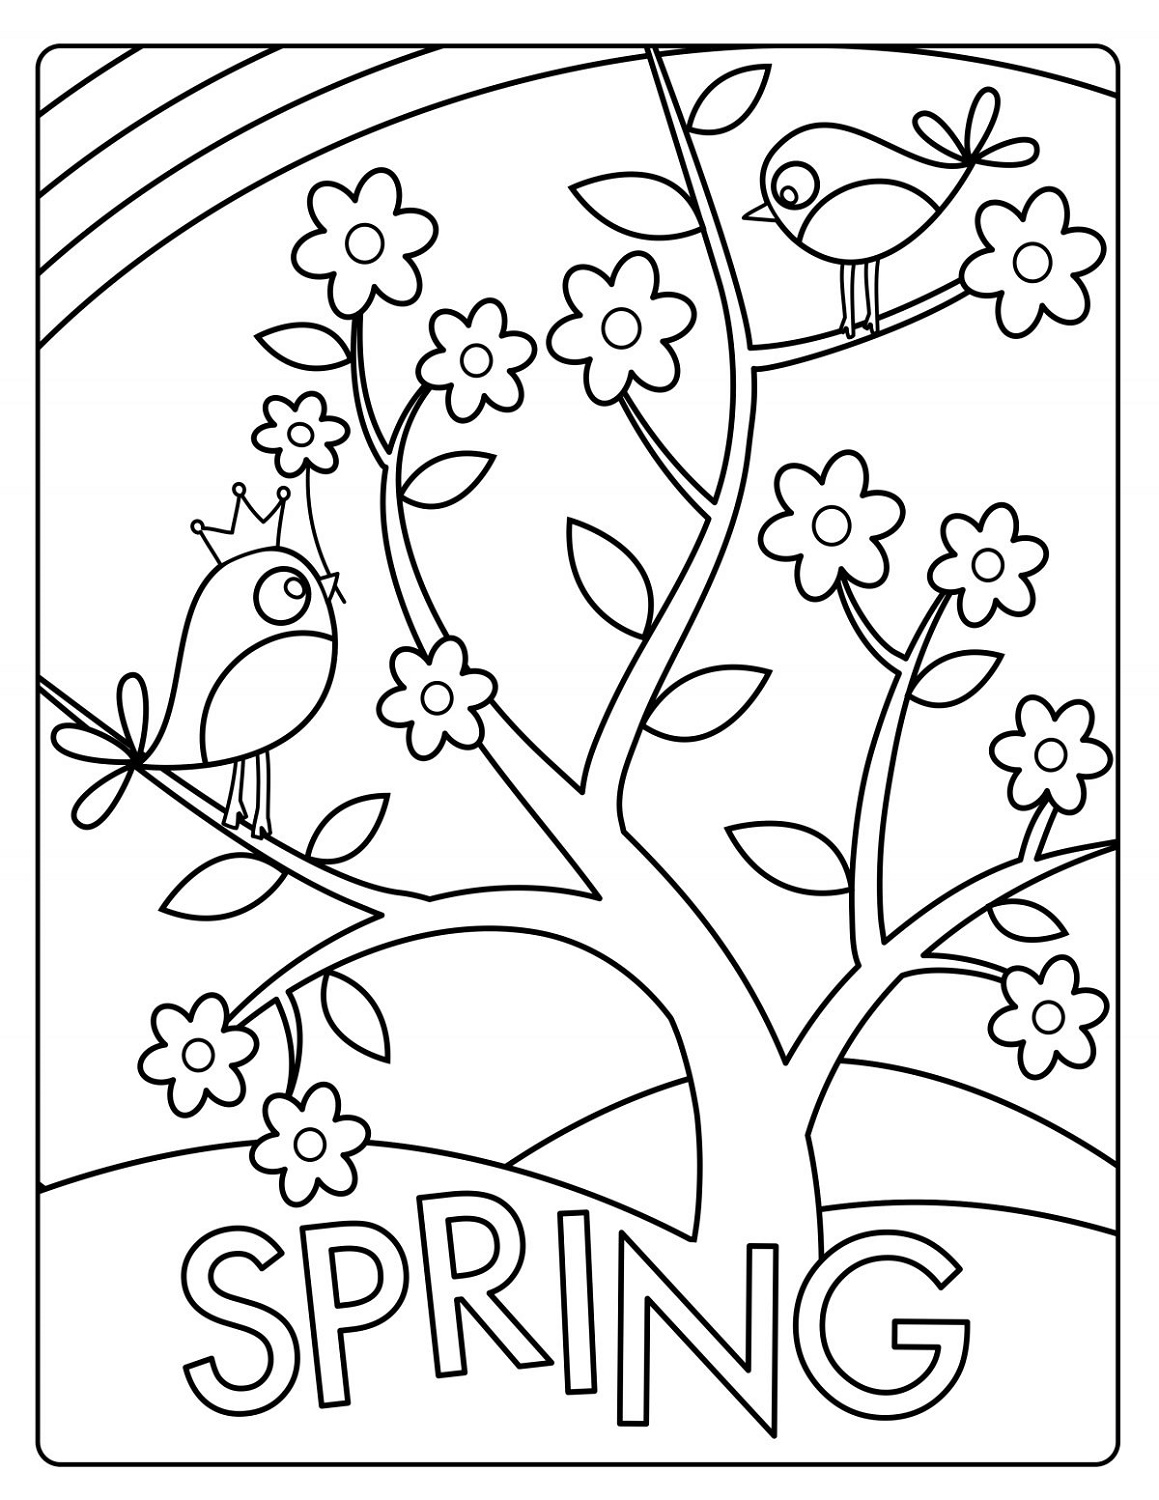 Spring Coloring Sheets To Print